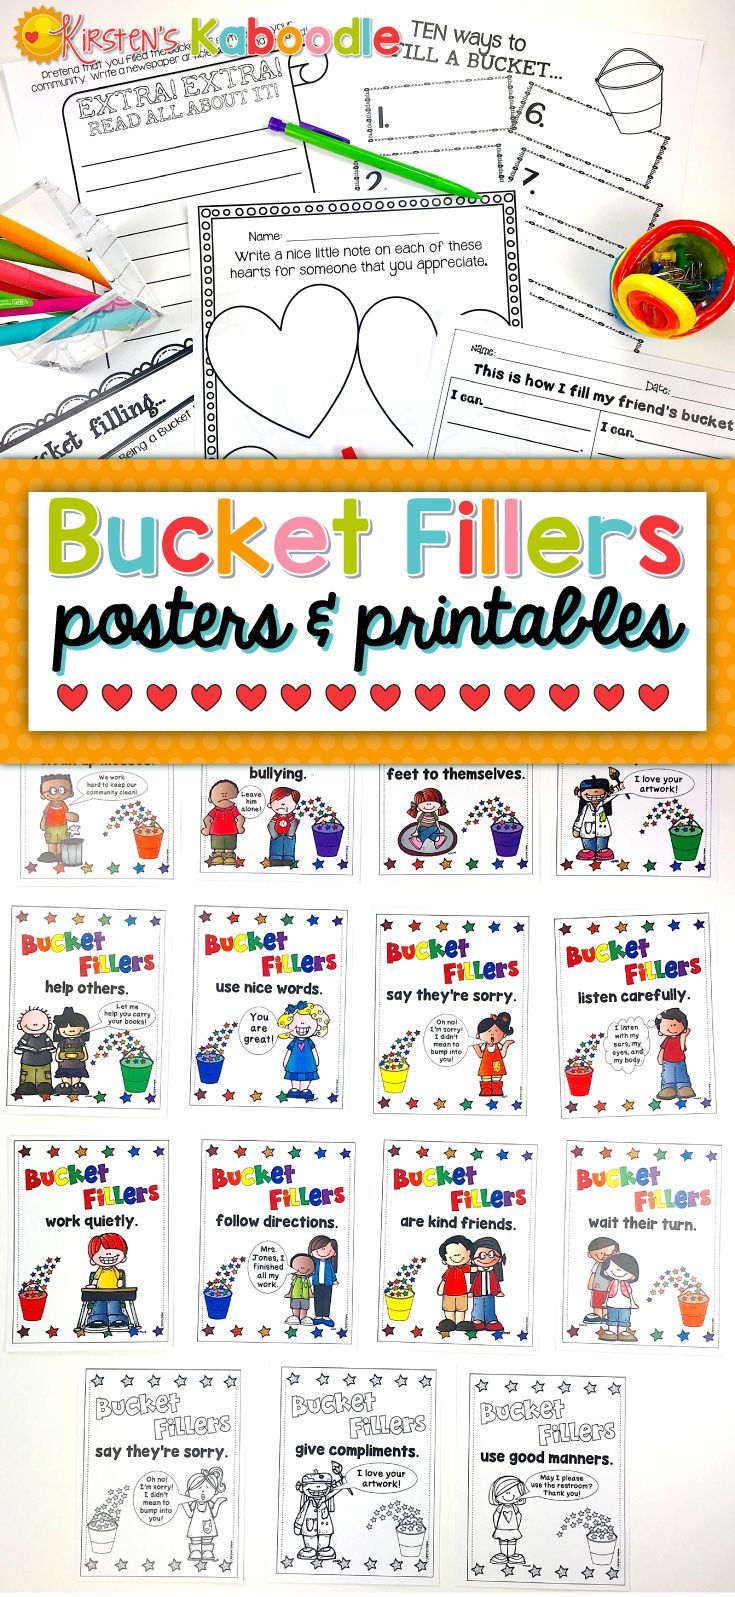 Teach your students about bucket filling with these bucket filler posters and activities! This easy to use, no prep, printable, bucket-filling product incorporates the concept of filling buckets and makes it an easy to grasp concept with 18 full-color posters (also in black and white), Bucket Filler certificates (also in black and white), and 5 bucket filler printables that require work ahead of time. The full color posters are PERFECT for a back to school or behavior expectation bulletin…